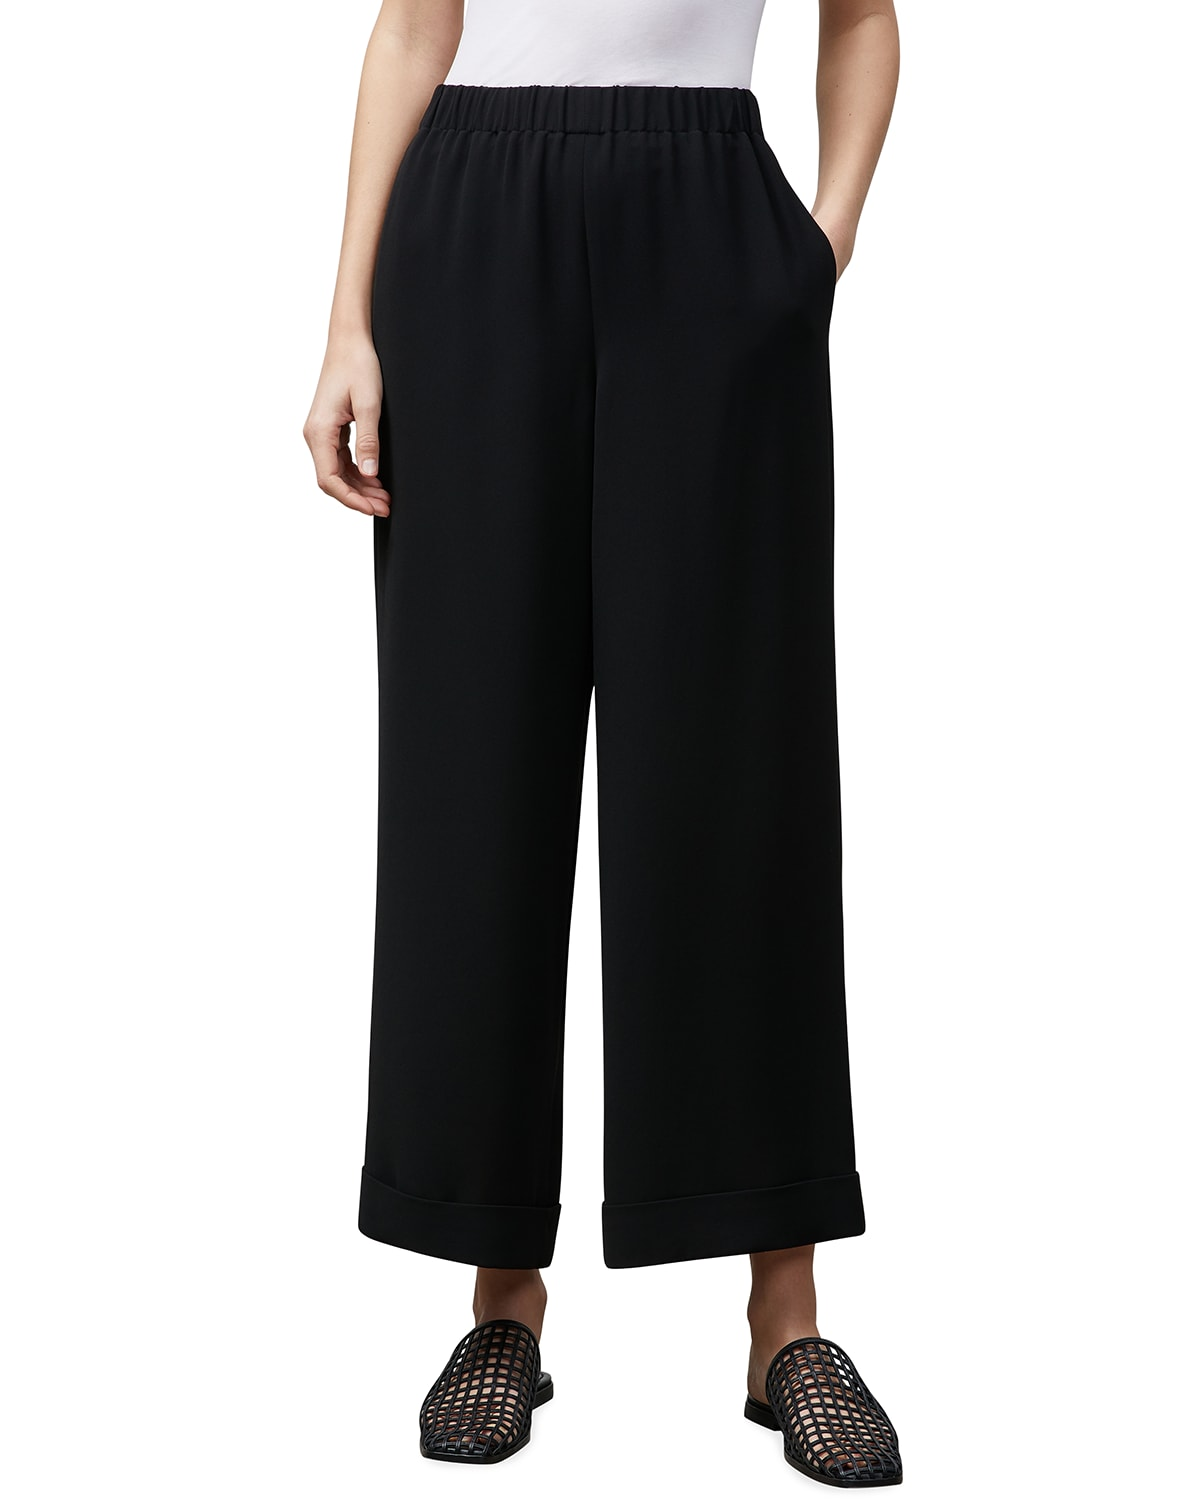 Riverside Pull-On Ankle Pants with Cuffs